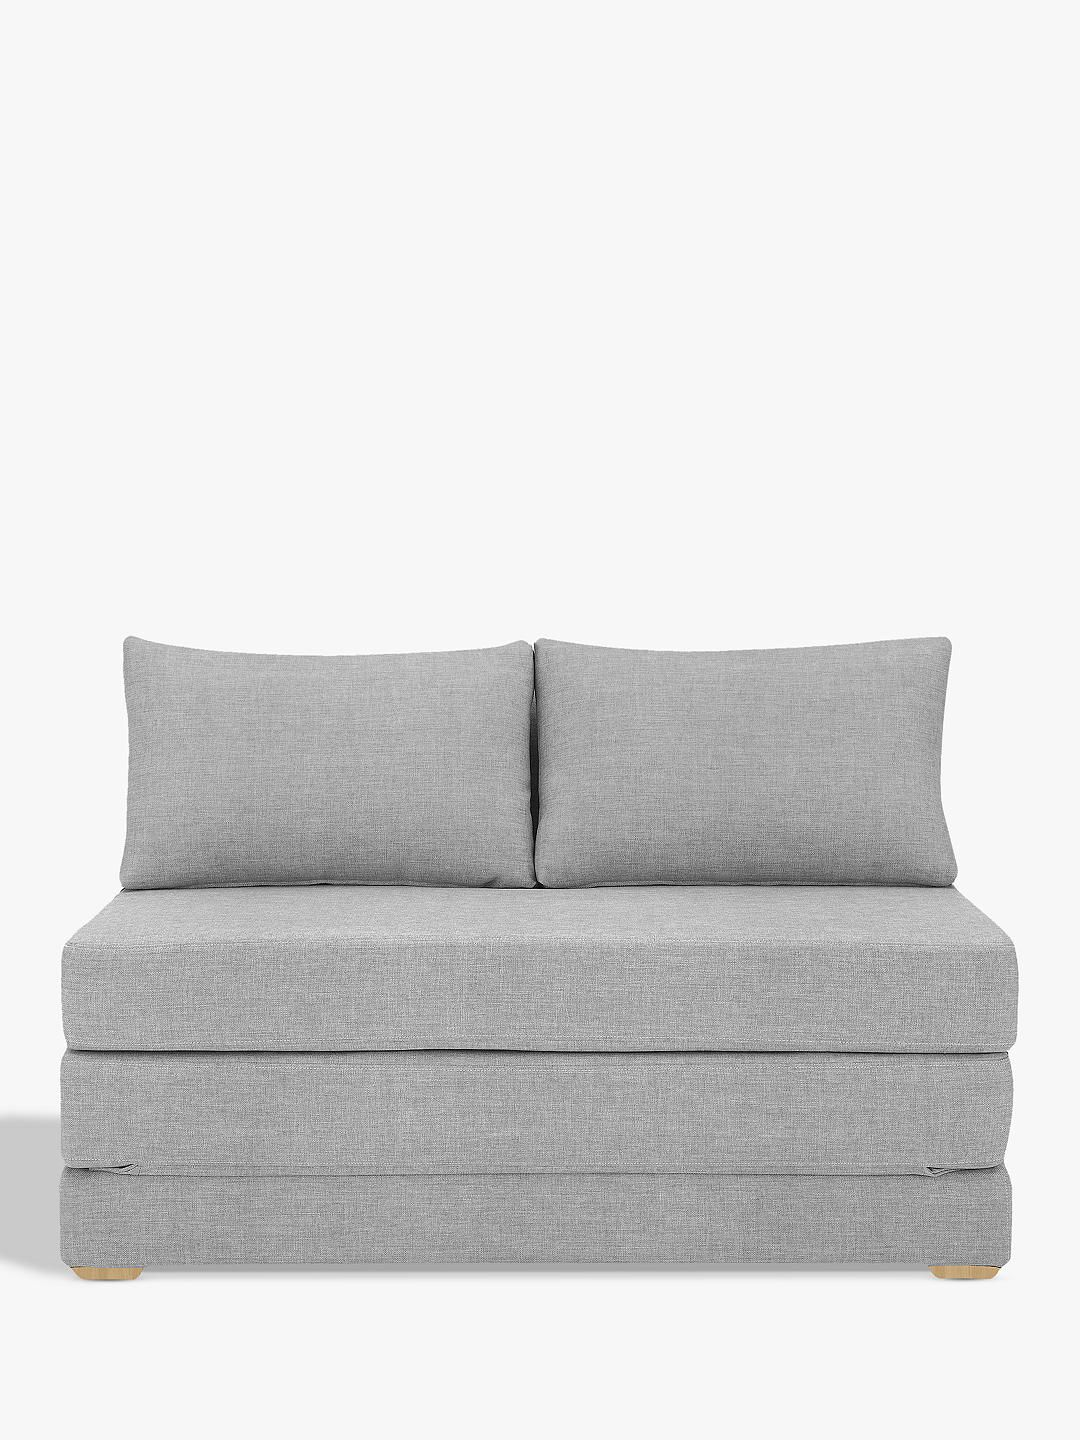 Phenomenal House By John Lewis Kip Small Sofa Bed With Foam Mattress Ibusinesslaw Wood Chair Design Ideas Ibusinesslaworg